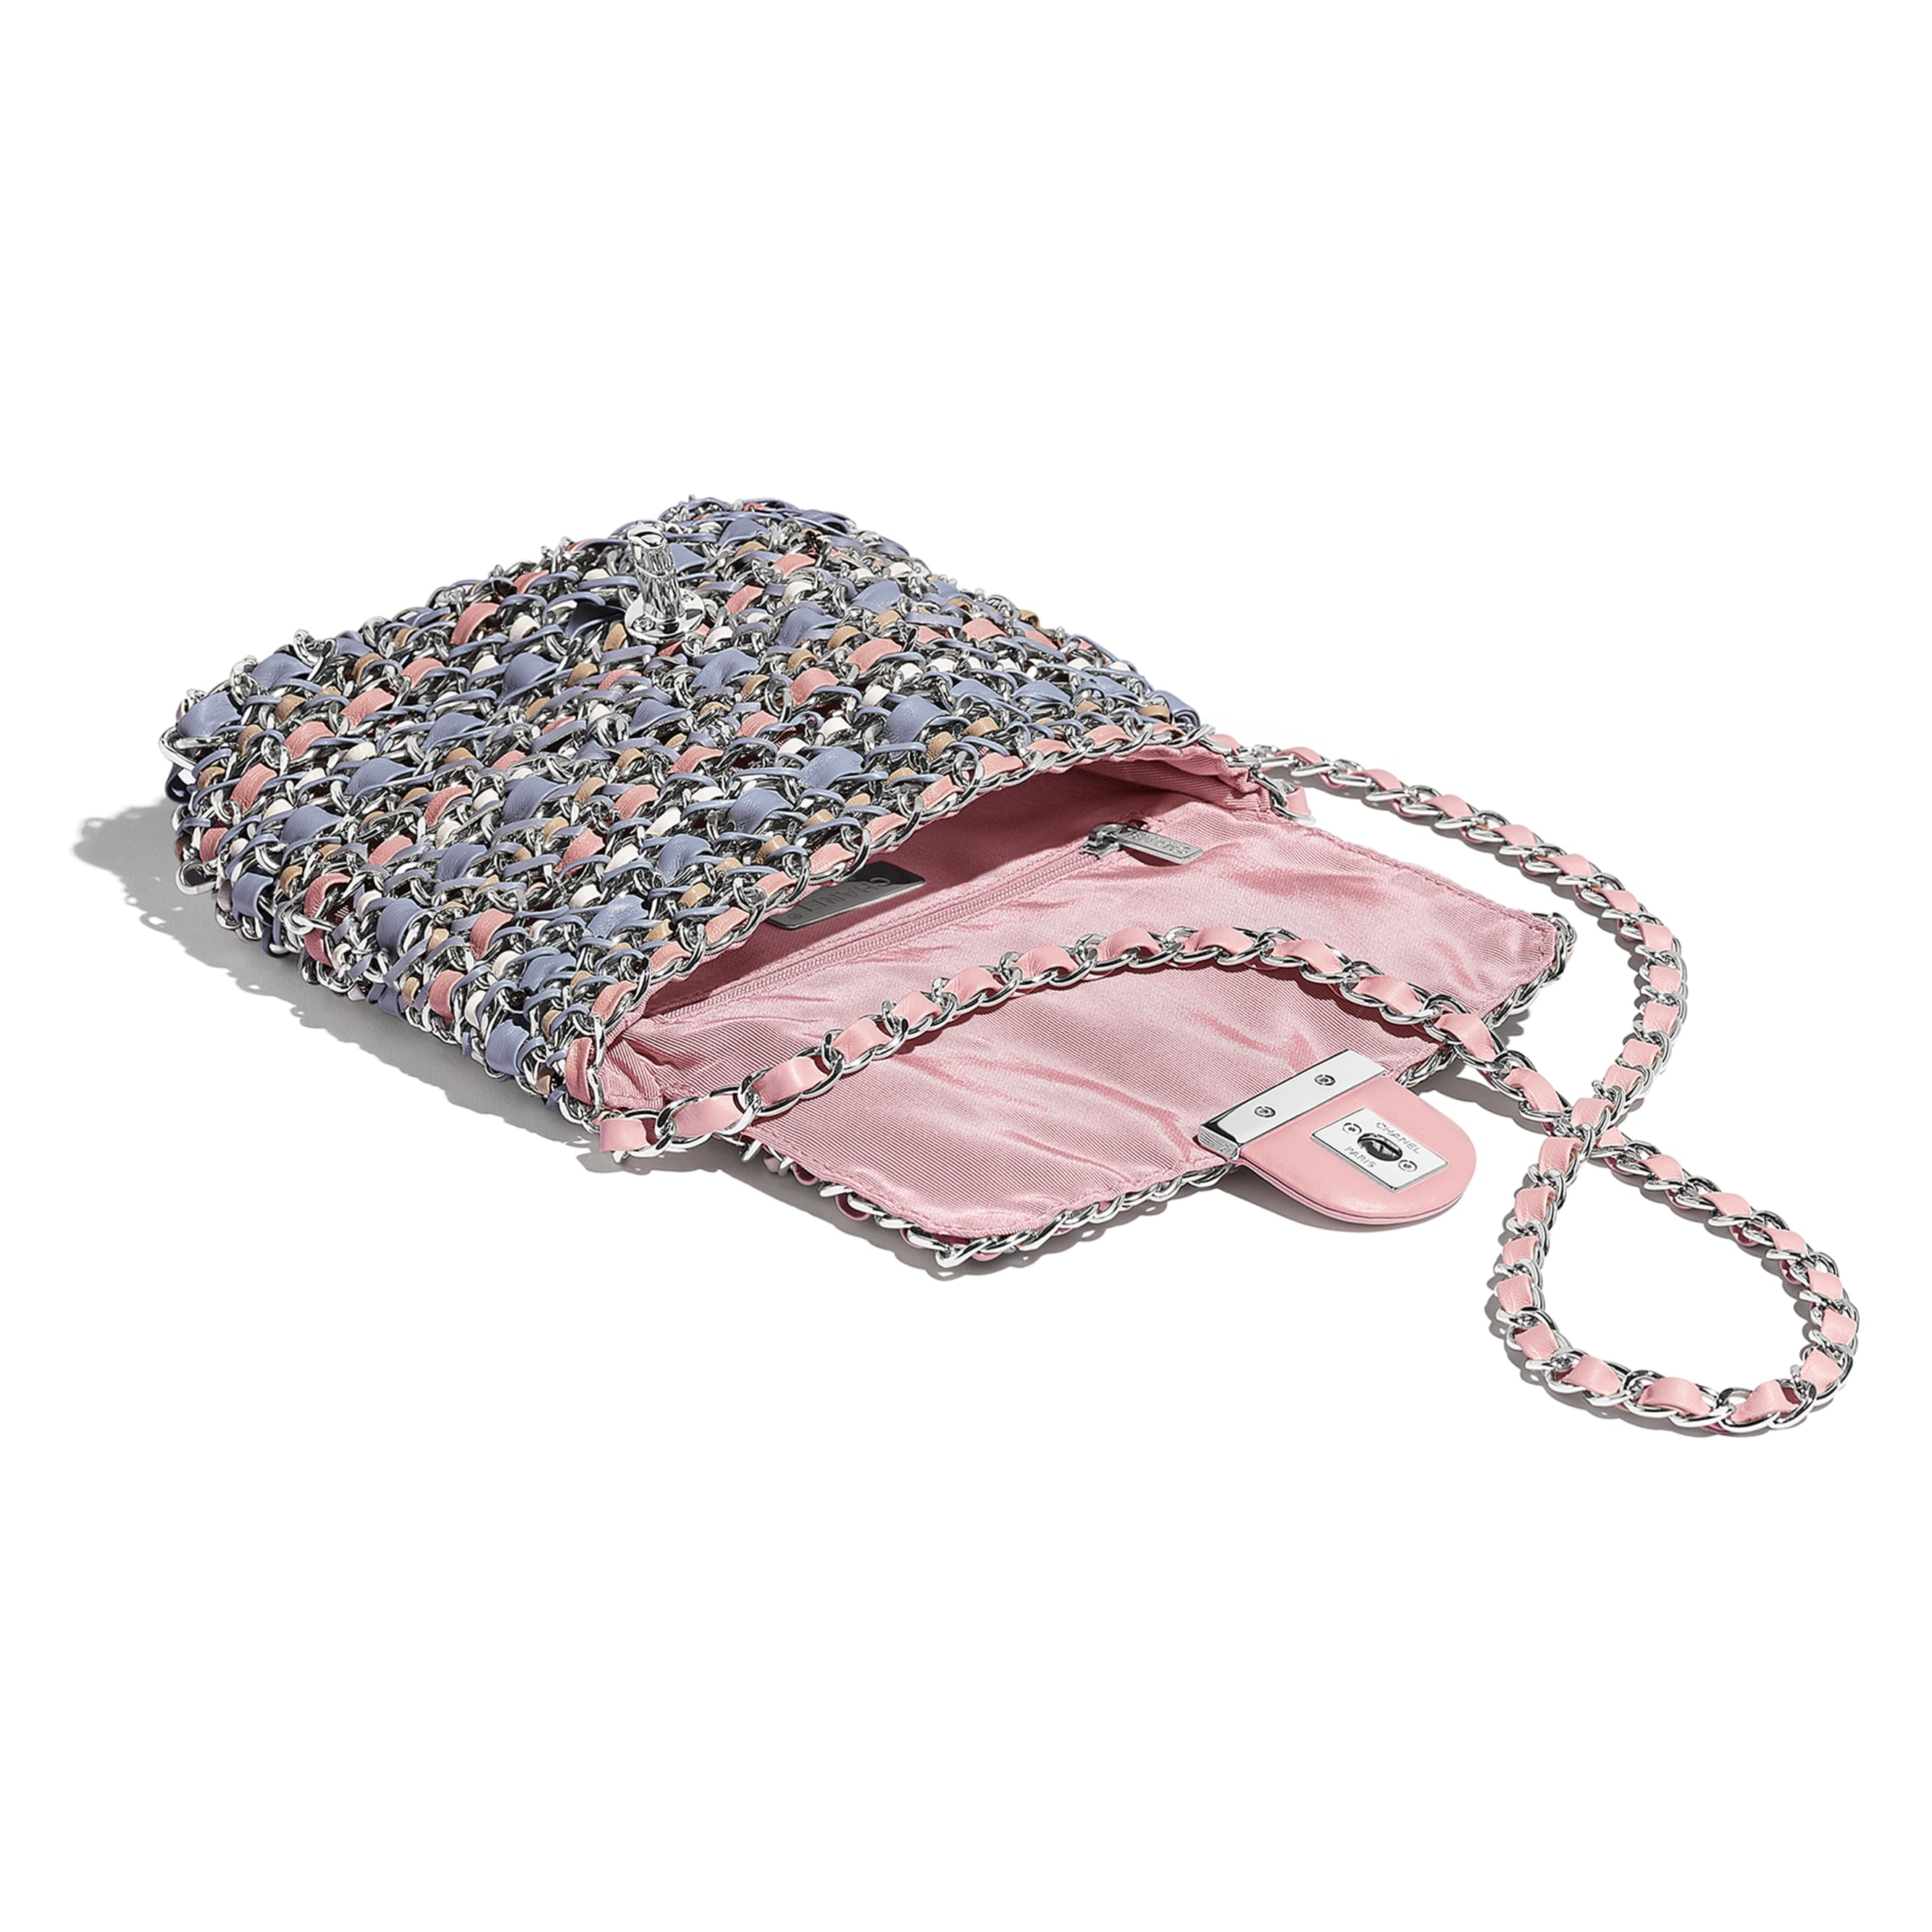 Flap Bag - Pink, Blue, Beige & White - Calfskin & Silver-Tone Metal - CHANEL - Other view - see standard sized version